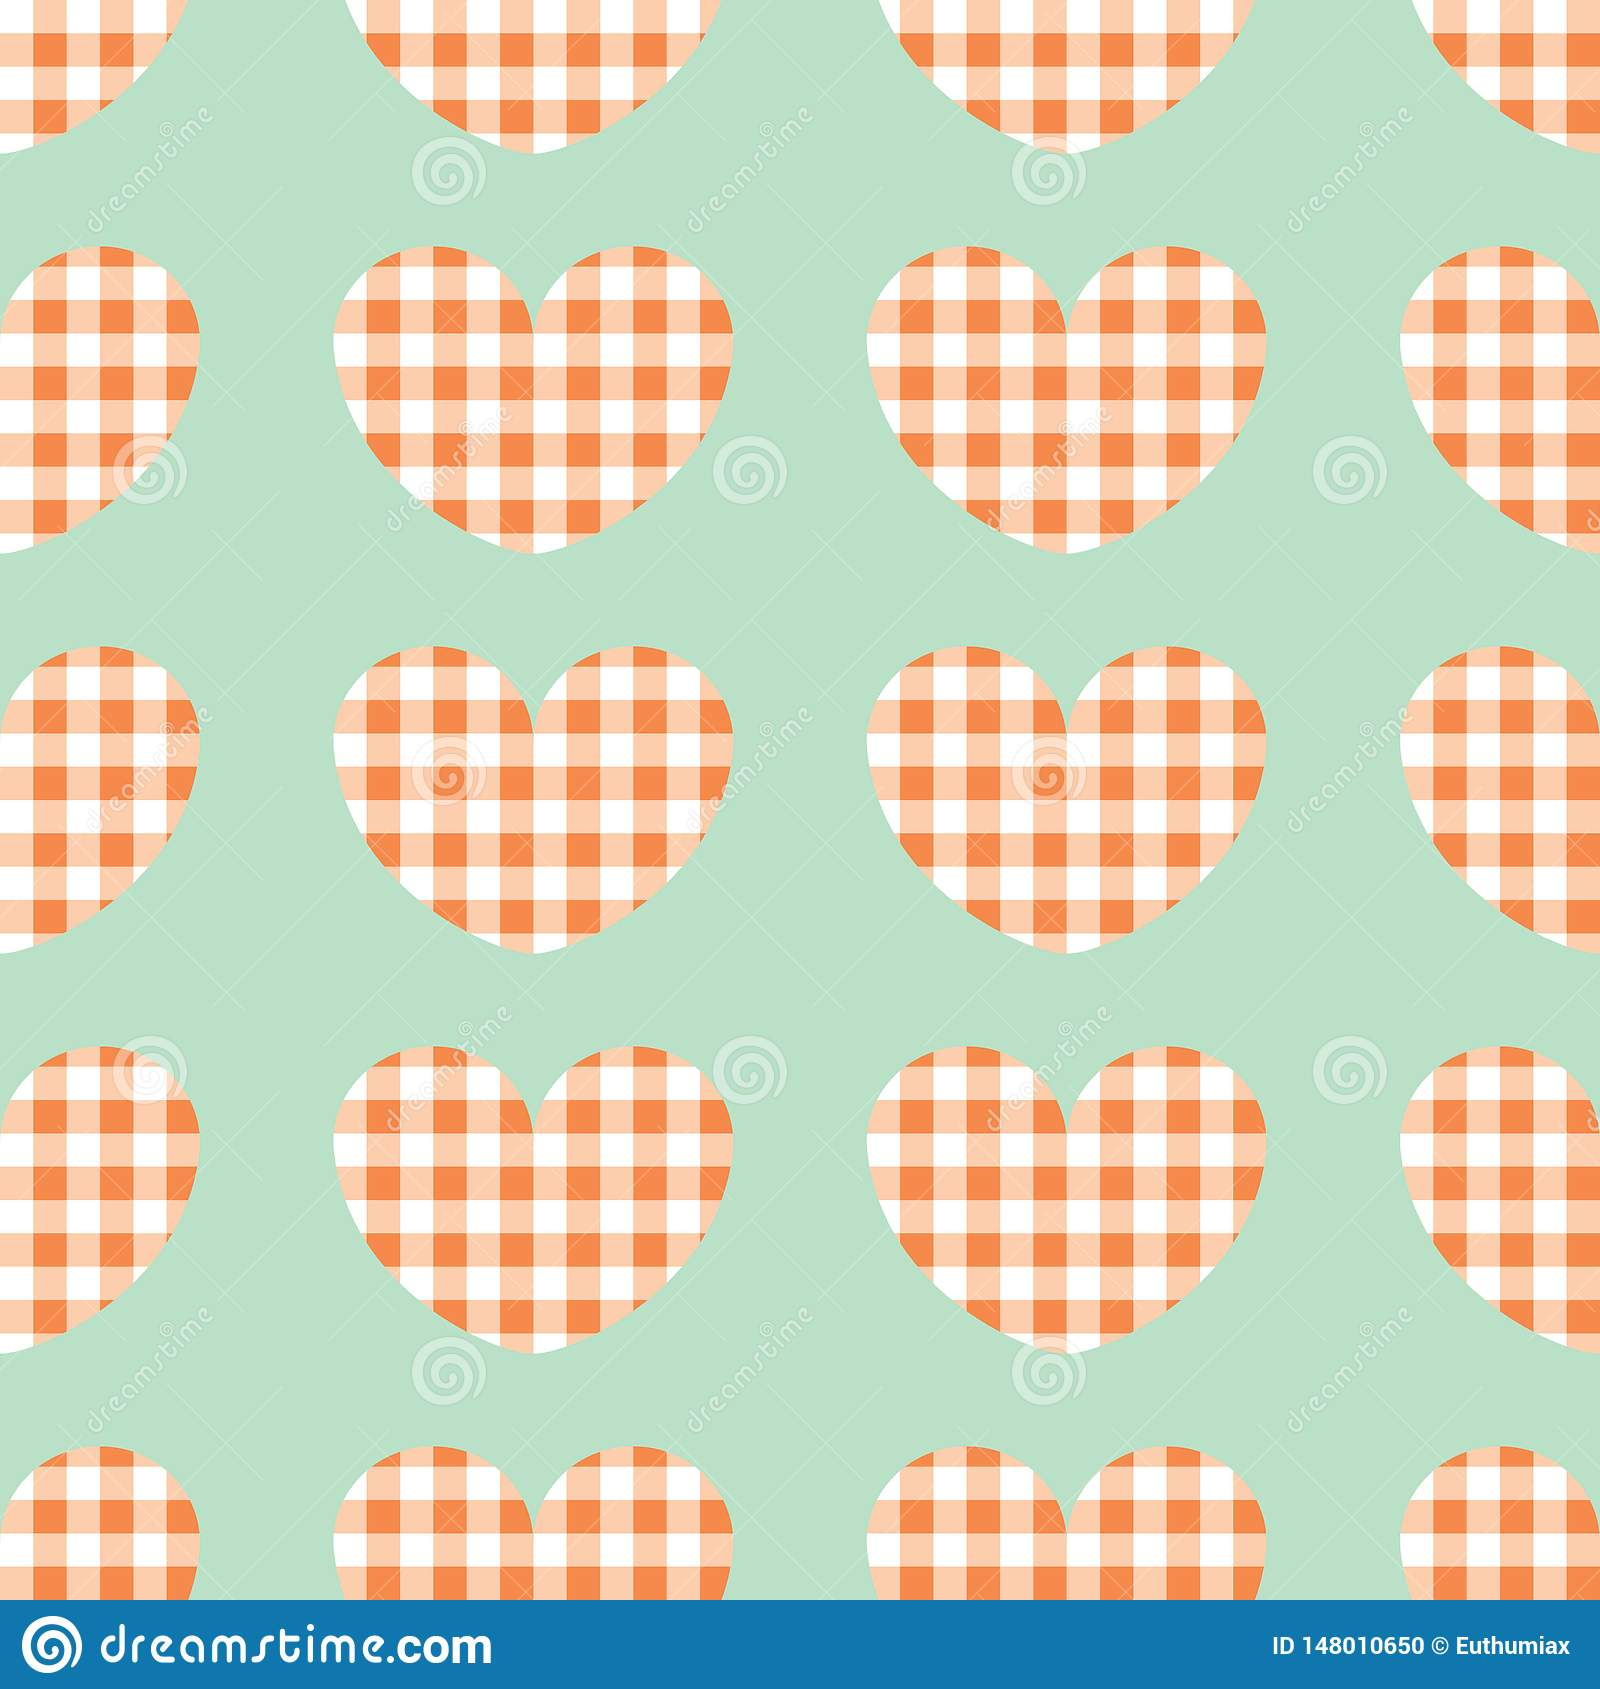 Red and white plaid vector background. Seamless repeat checkered hearts pattern